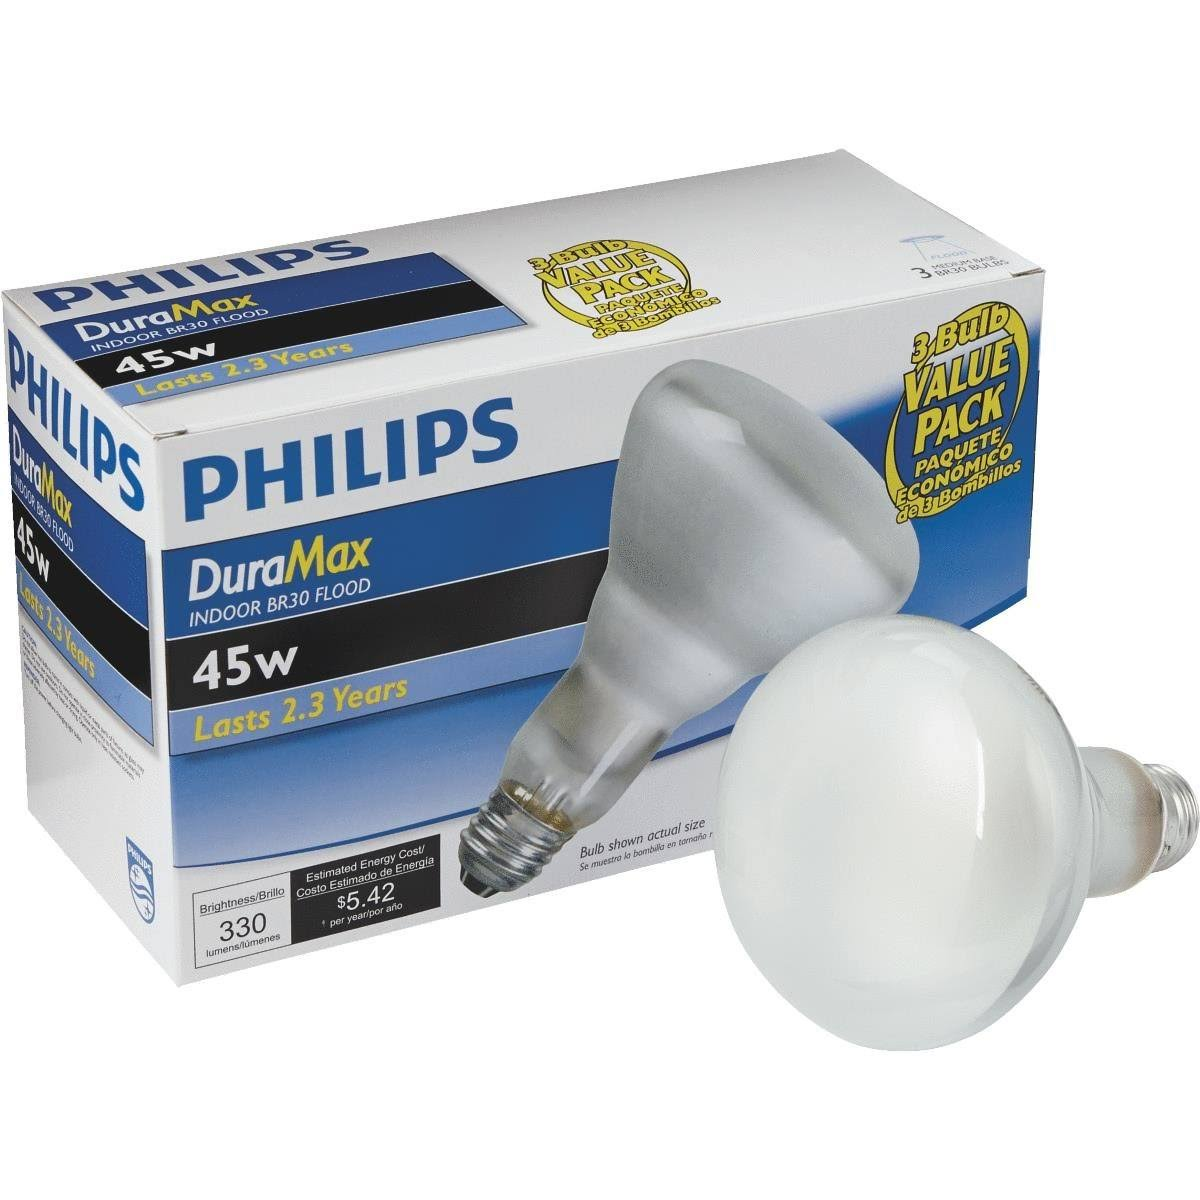 Philips Duramax Incandescent Flood Light Bulb - 45W, 3pk